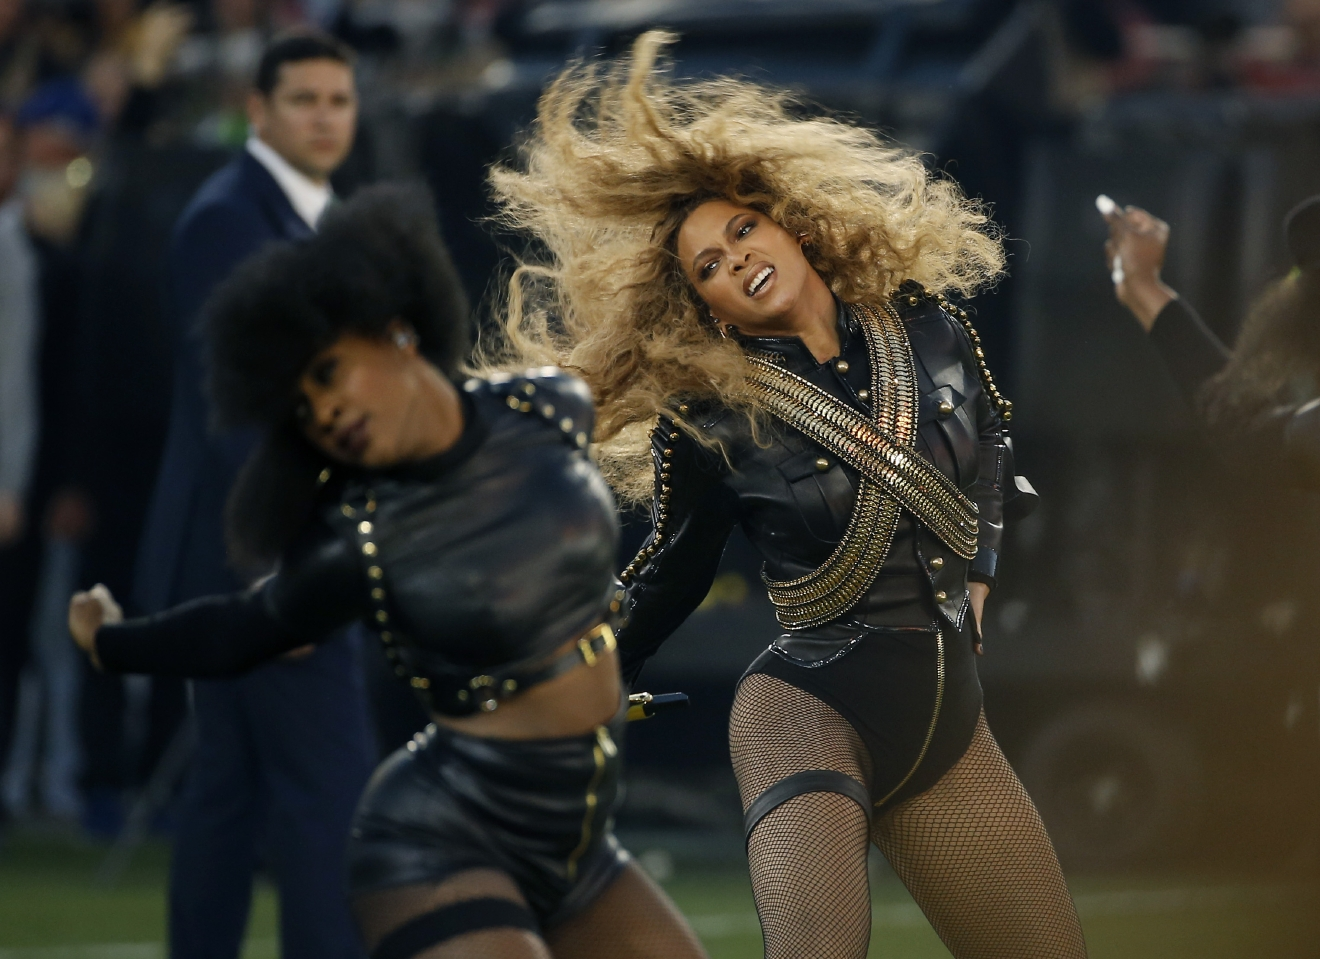 FILE - In this Feb. 7, 2016, file photo, Beyonce performs during halftime of the NFL Super Bowl 50 football game in Santa Clara, Calif. In a surprise appearance, Beyonce strode onstage in sparkling pinstripes Monday, June 6, 2016, to speak emotionally about both family and fashion at the annual Council of Fashion Designers of America awards ceremony. (AP Photo/Matt Slocum, File)